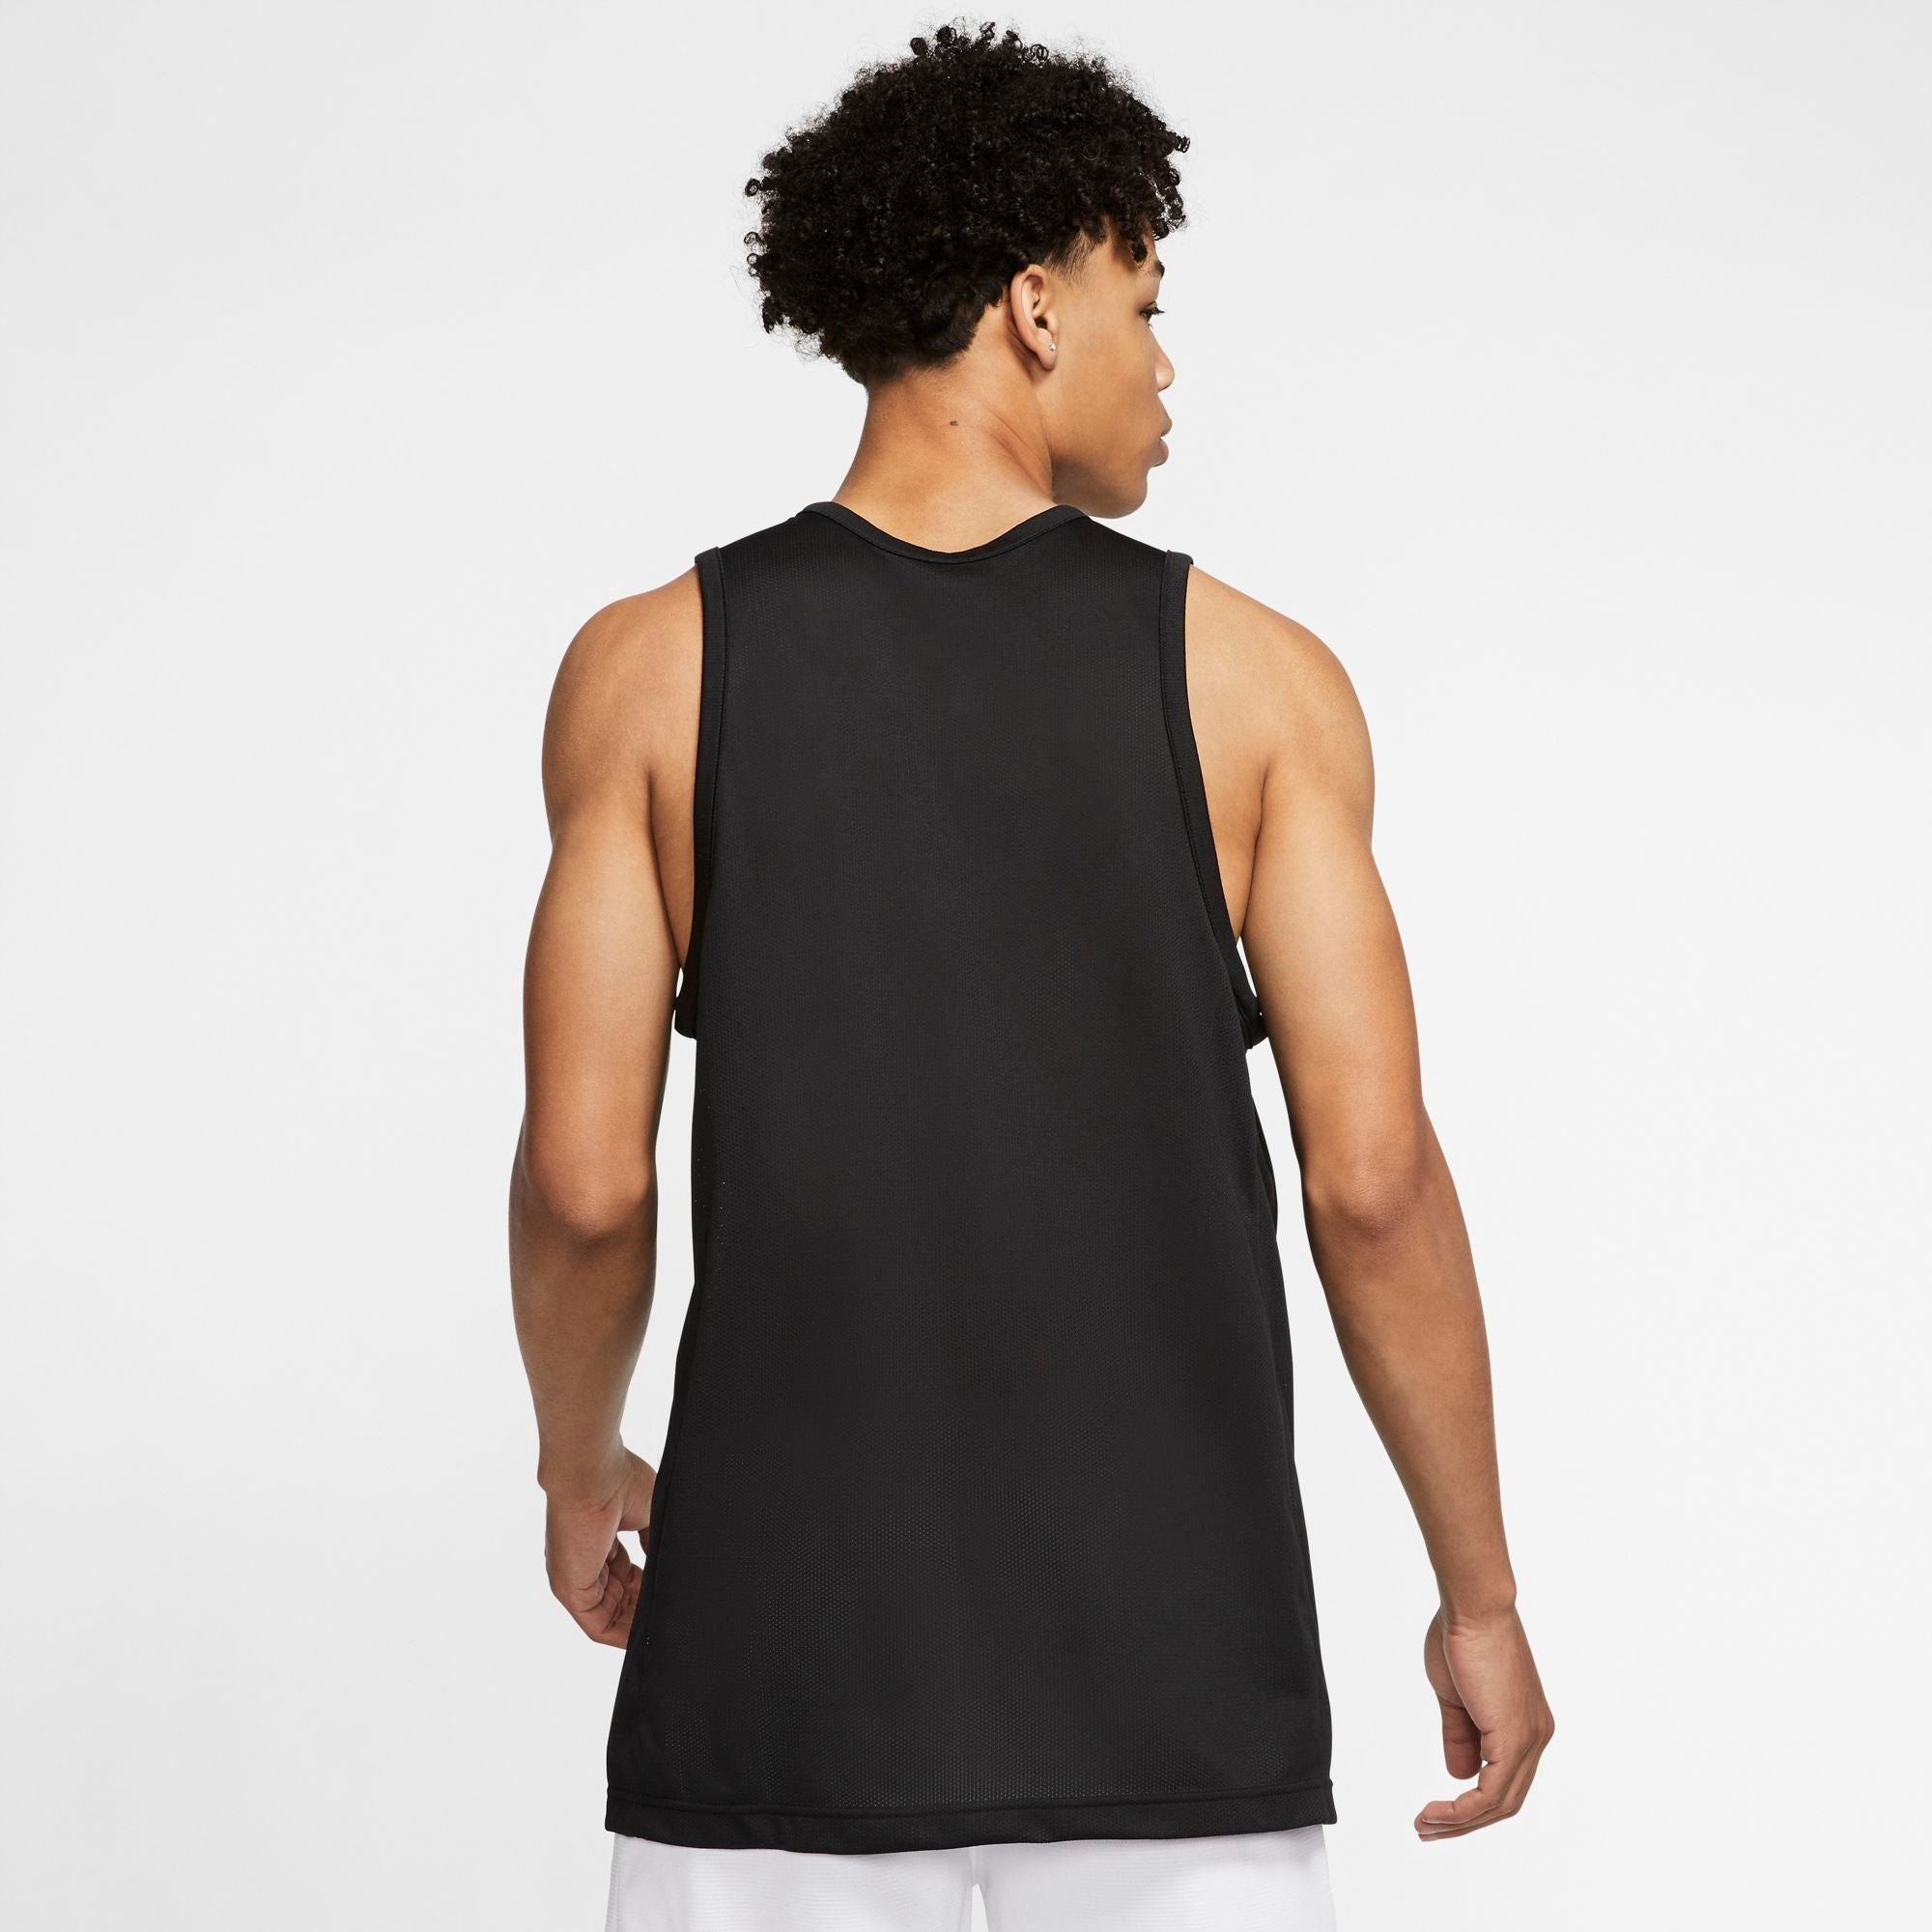 Nike Basketball Dri-Fit Jersey - Black/White